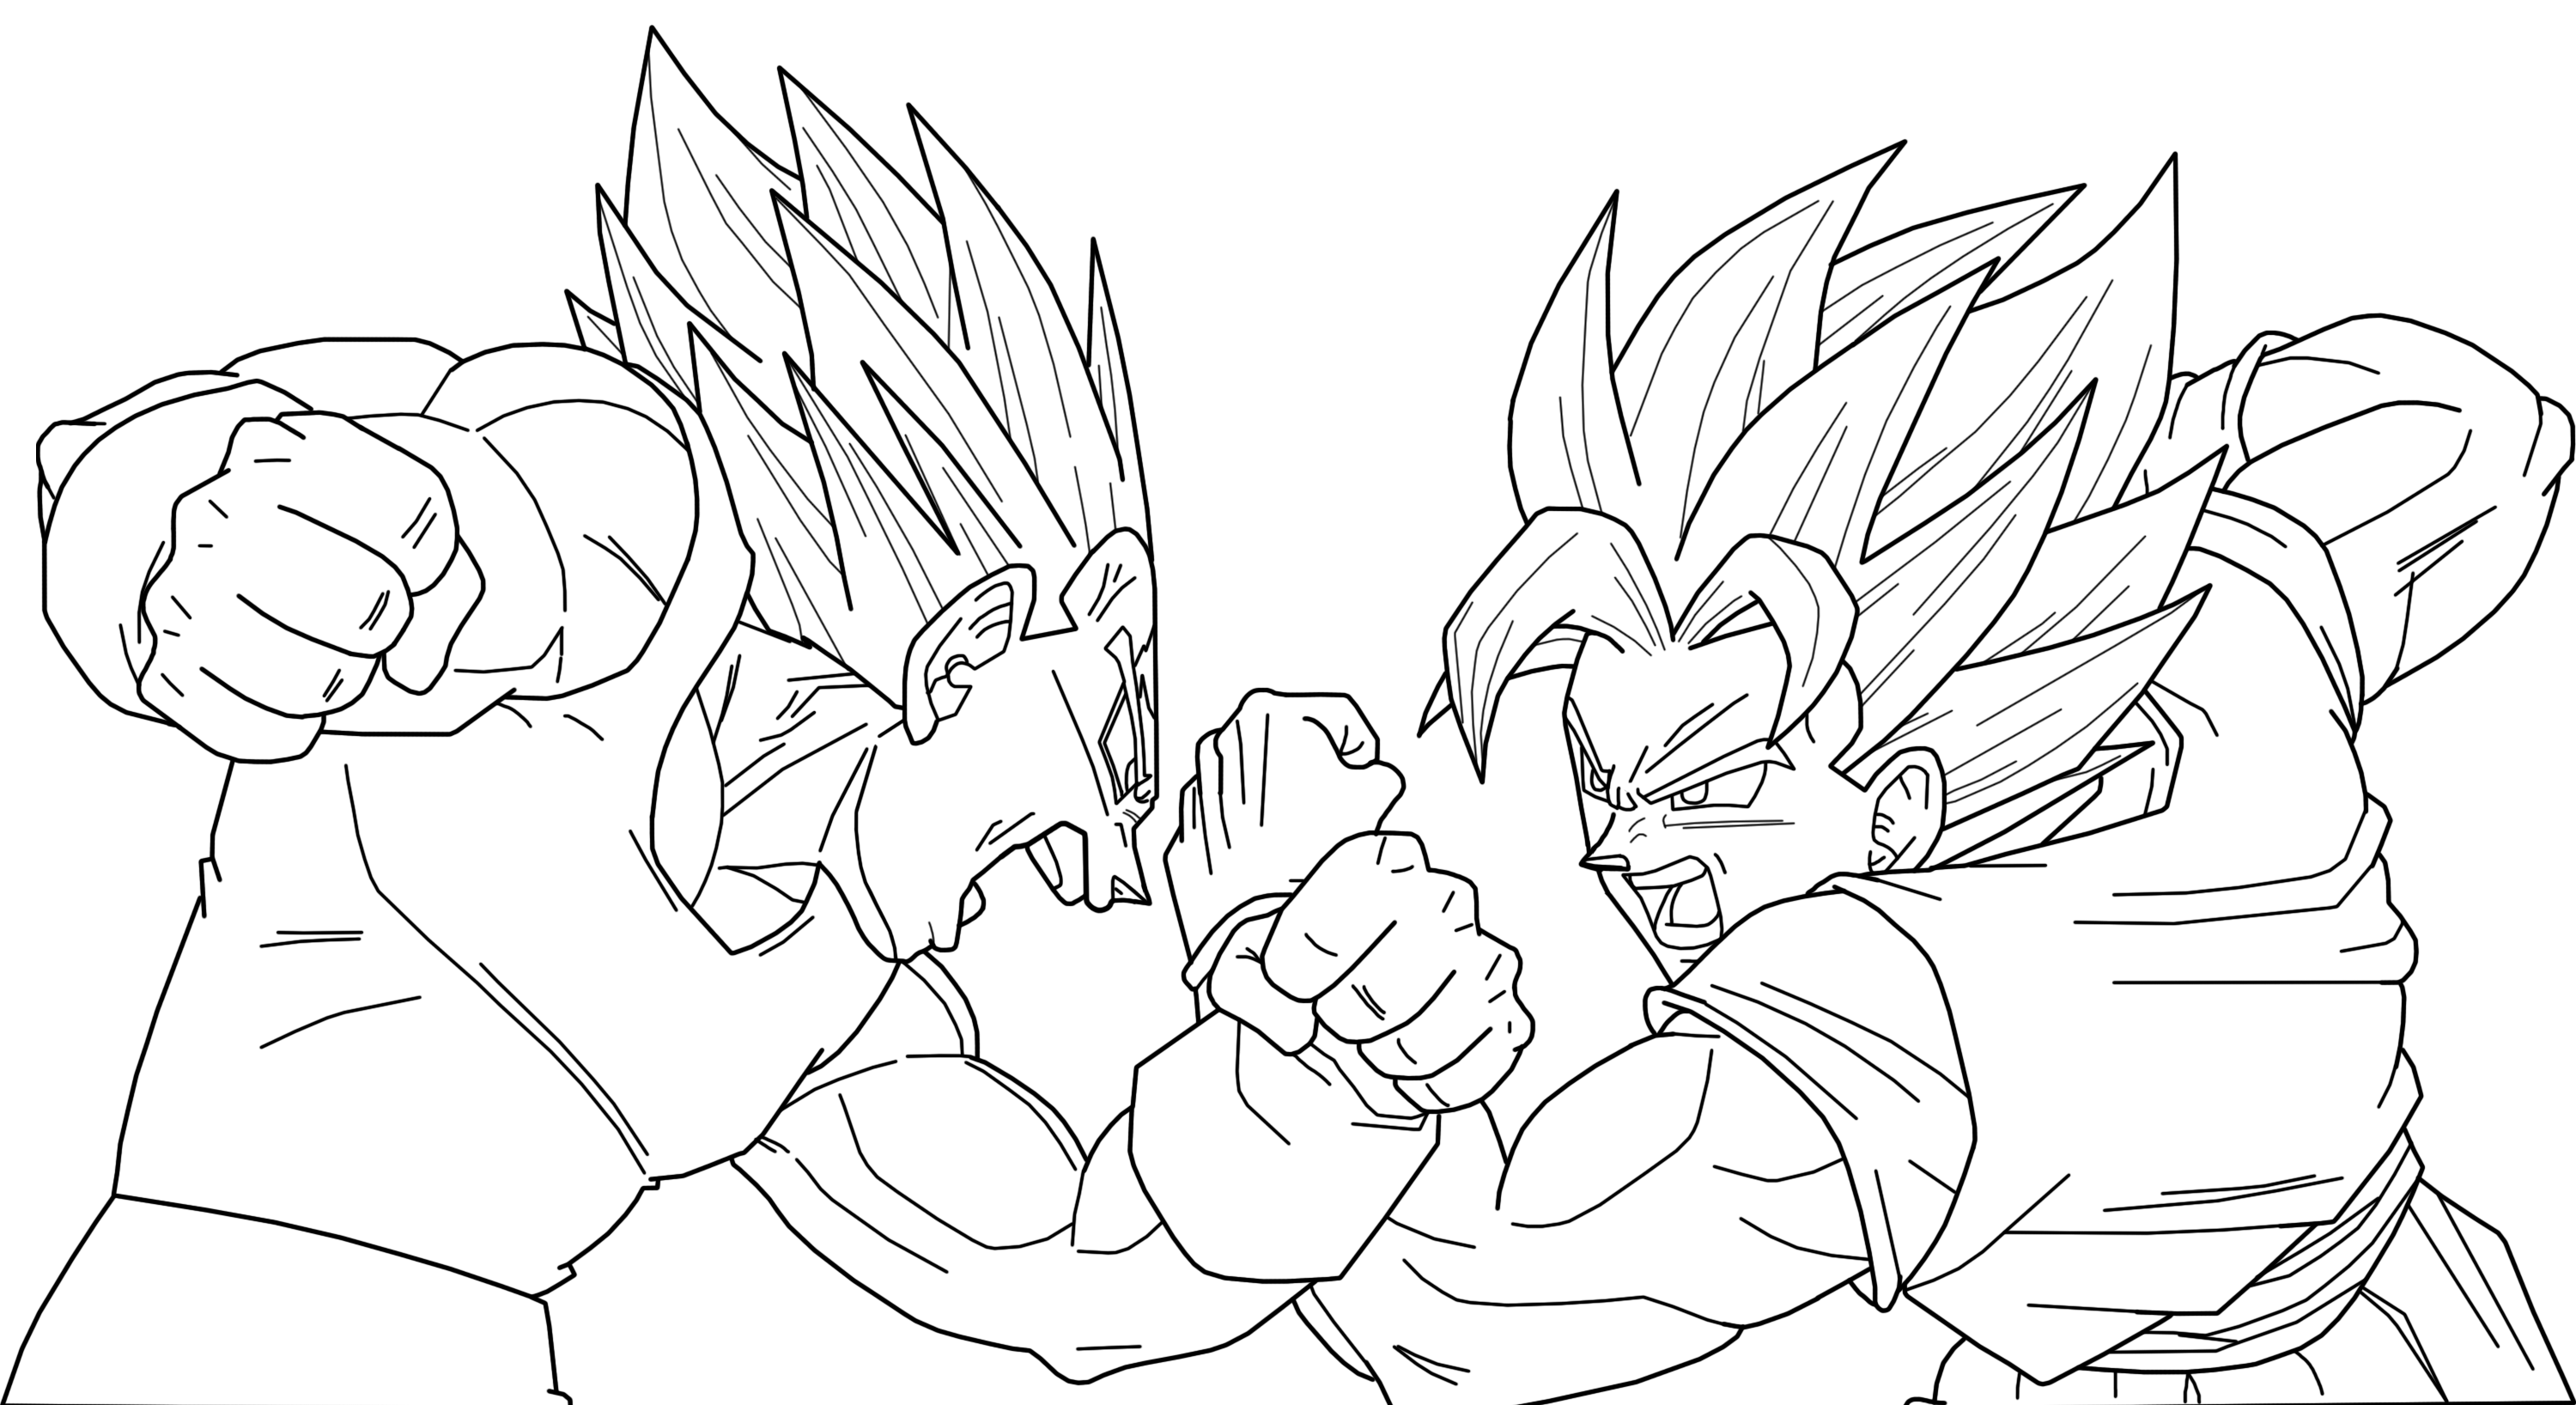 Gogeta Ssj4 Para Colorear: Majin Vegeta Vs SSJ2 Goku Lineart By BrusselTheSaiyan On